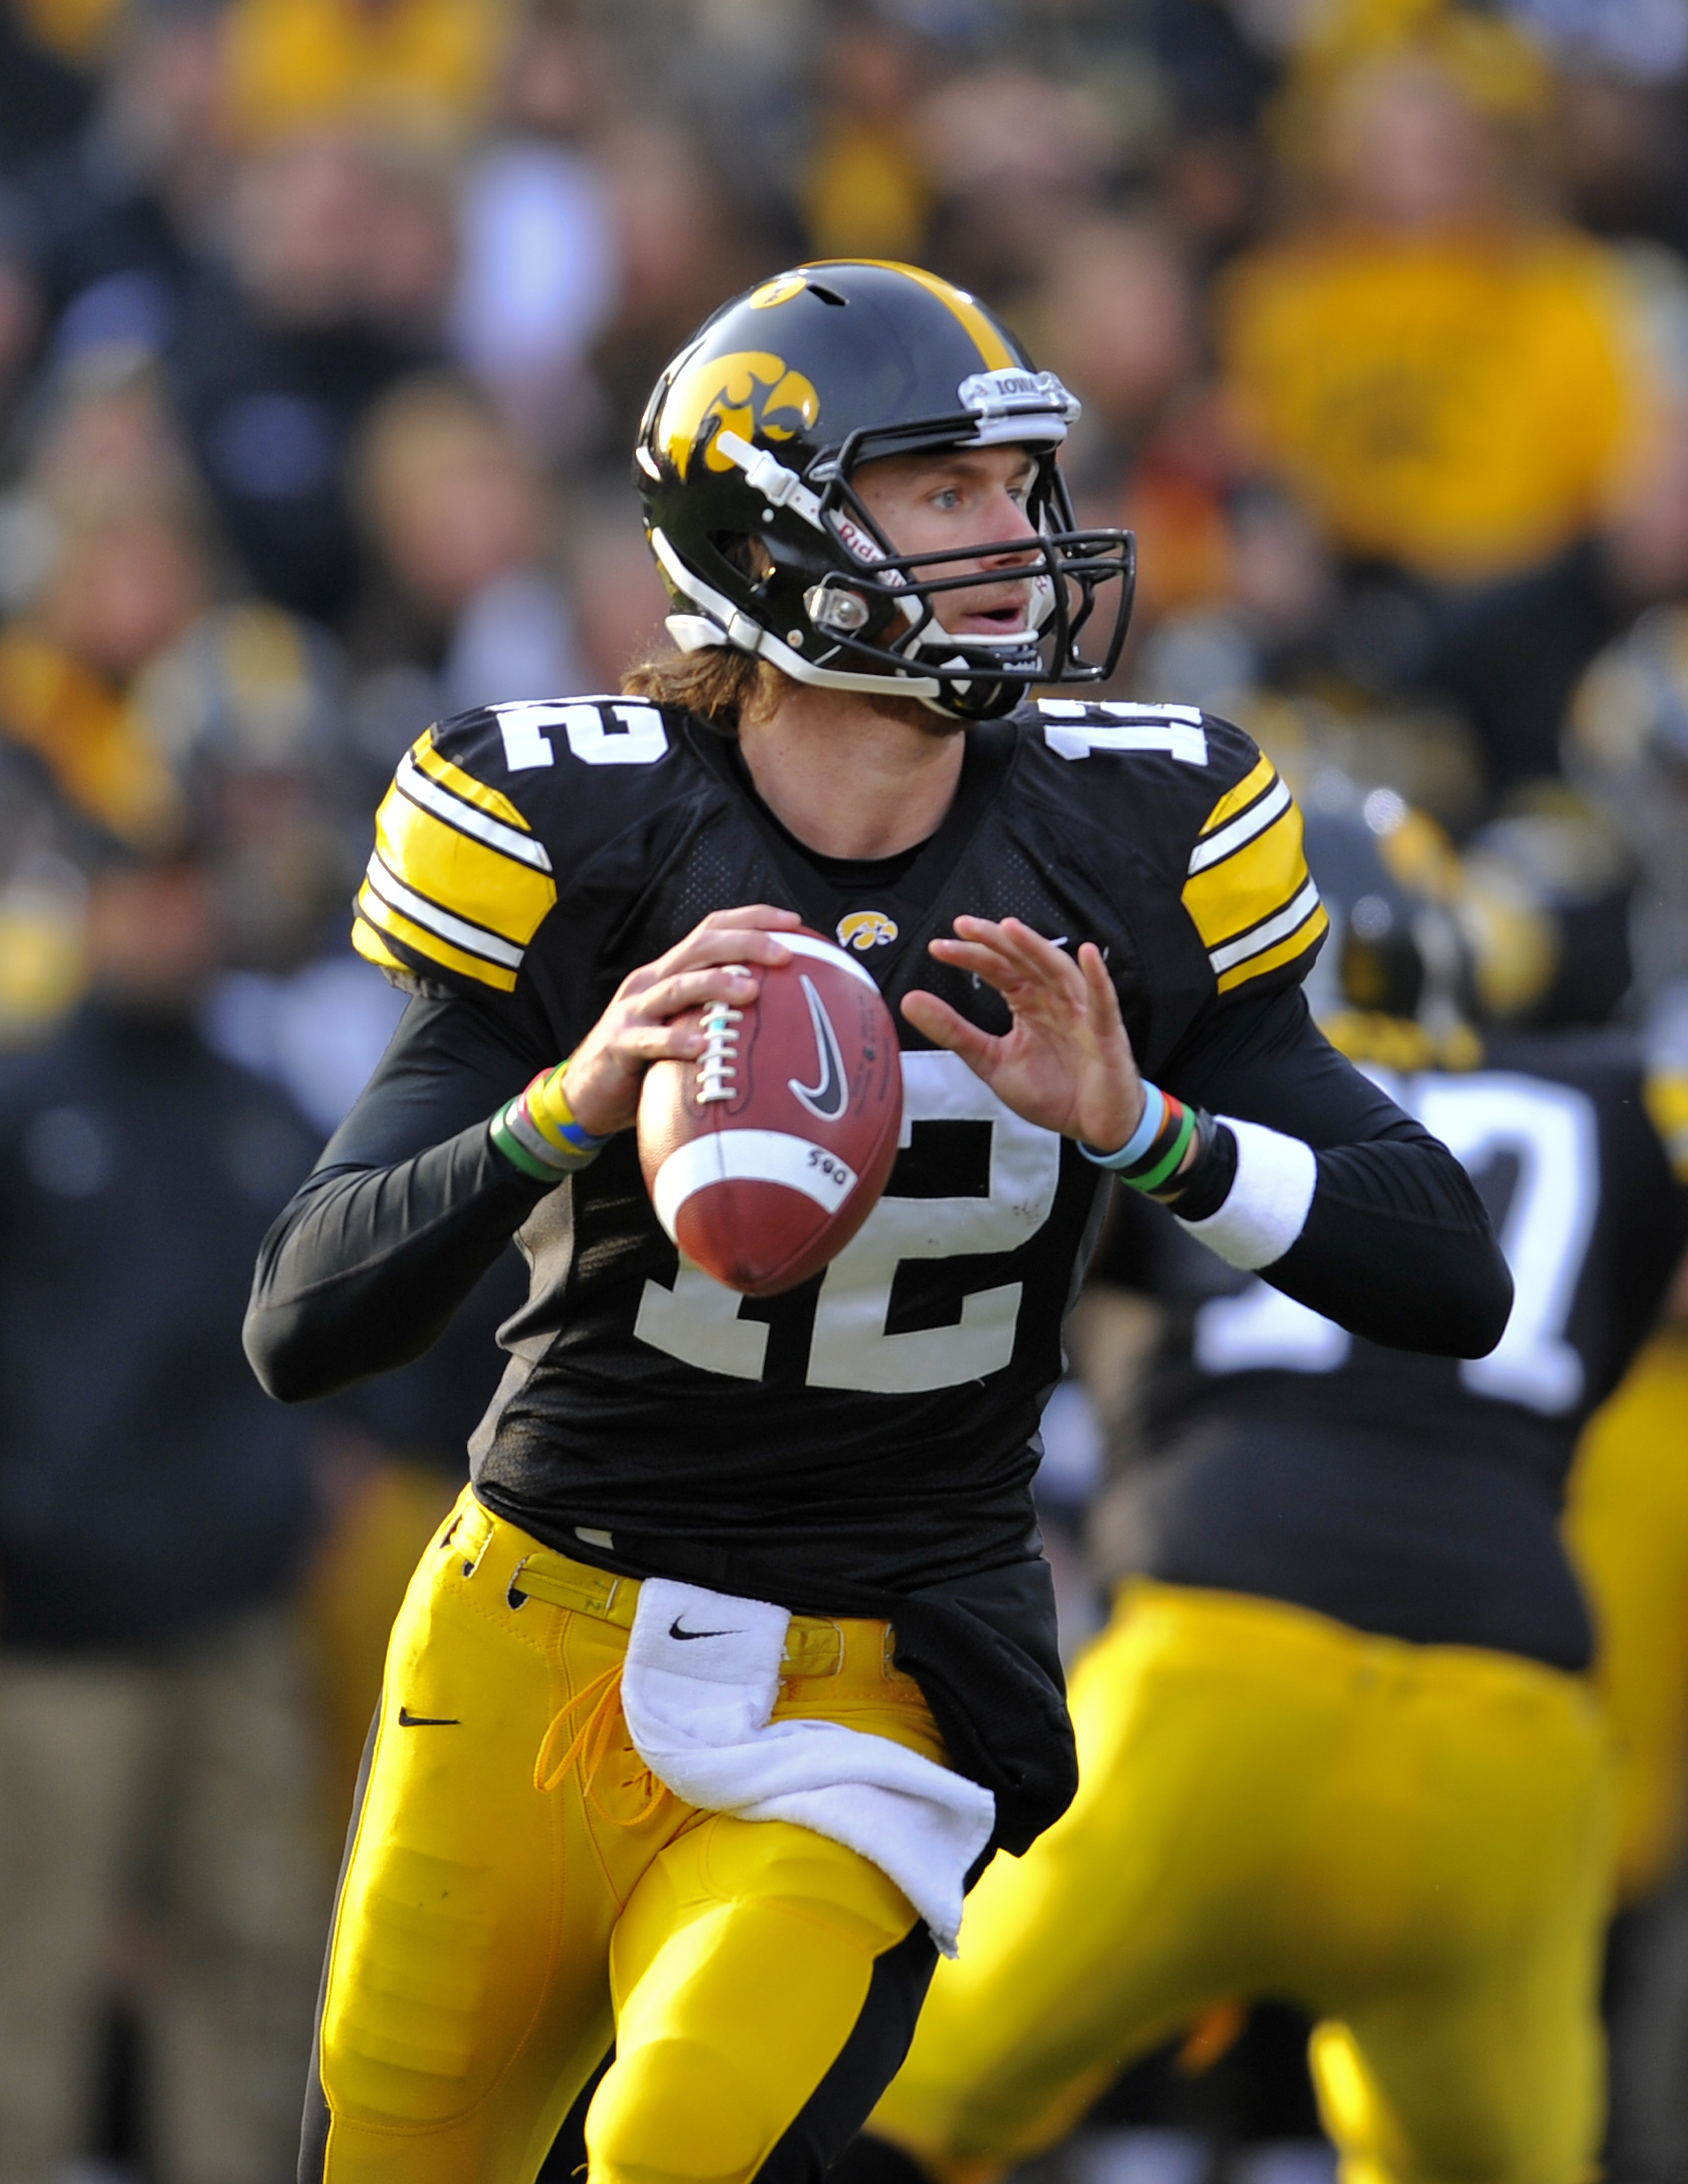 IOWA CITY, IA - NOVEMBER 20:  Quarterback Ricky Stanzi #12 of the University of Iowa Hawkeyes throws under pressure from Ohio State Buckeyes defenders during the first half of play at Kinnick Stadium on November 20, 2010 in Iowa City, Iowa. Ohio State won